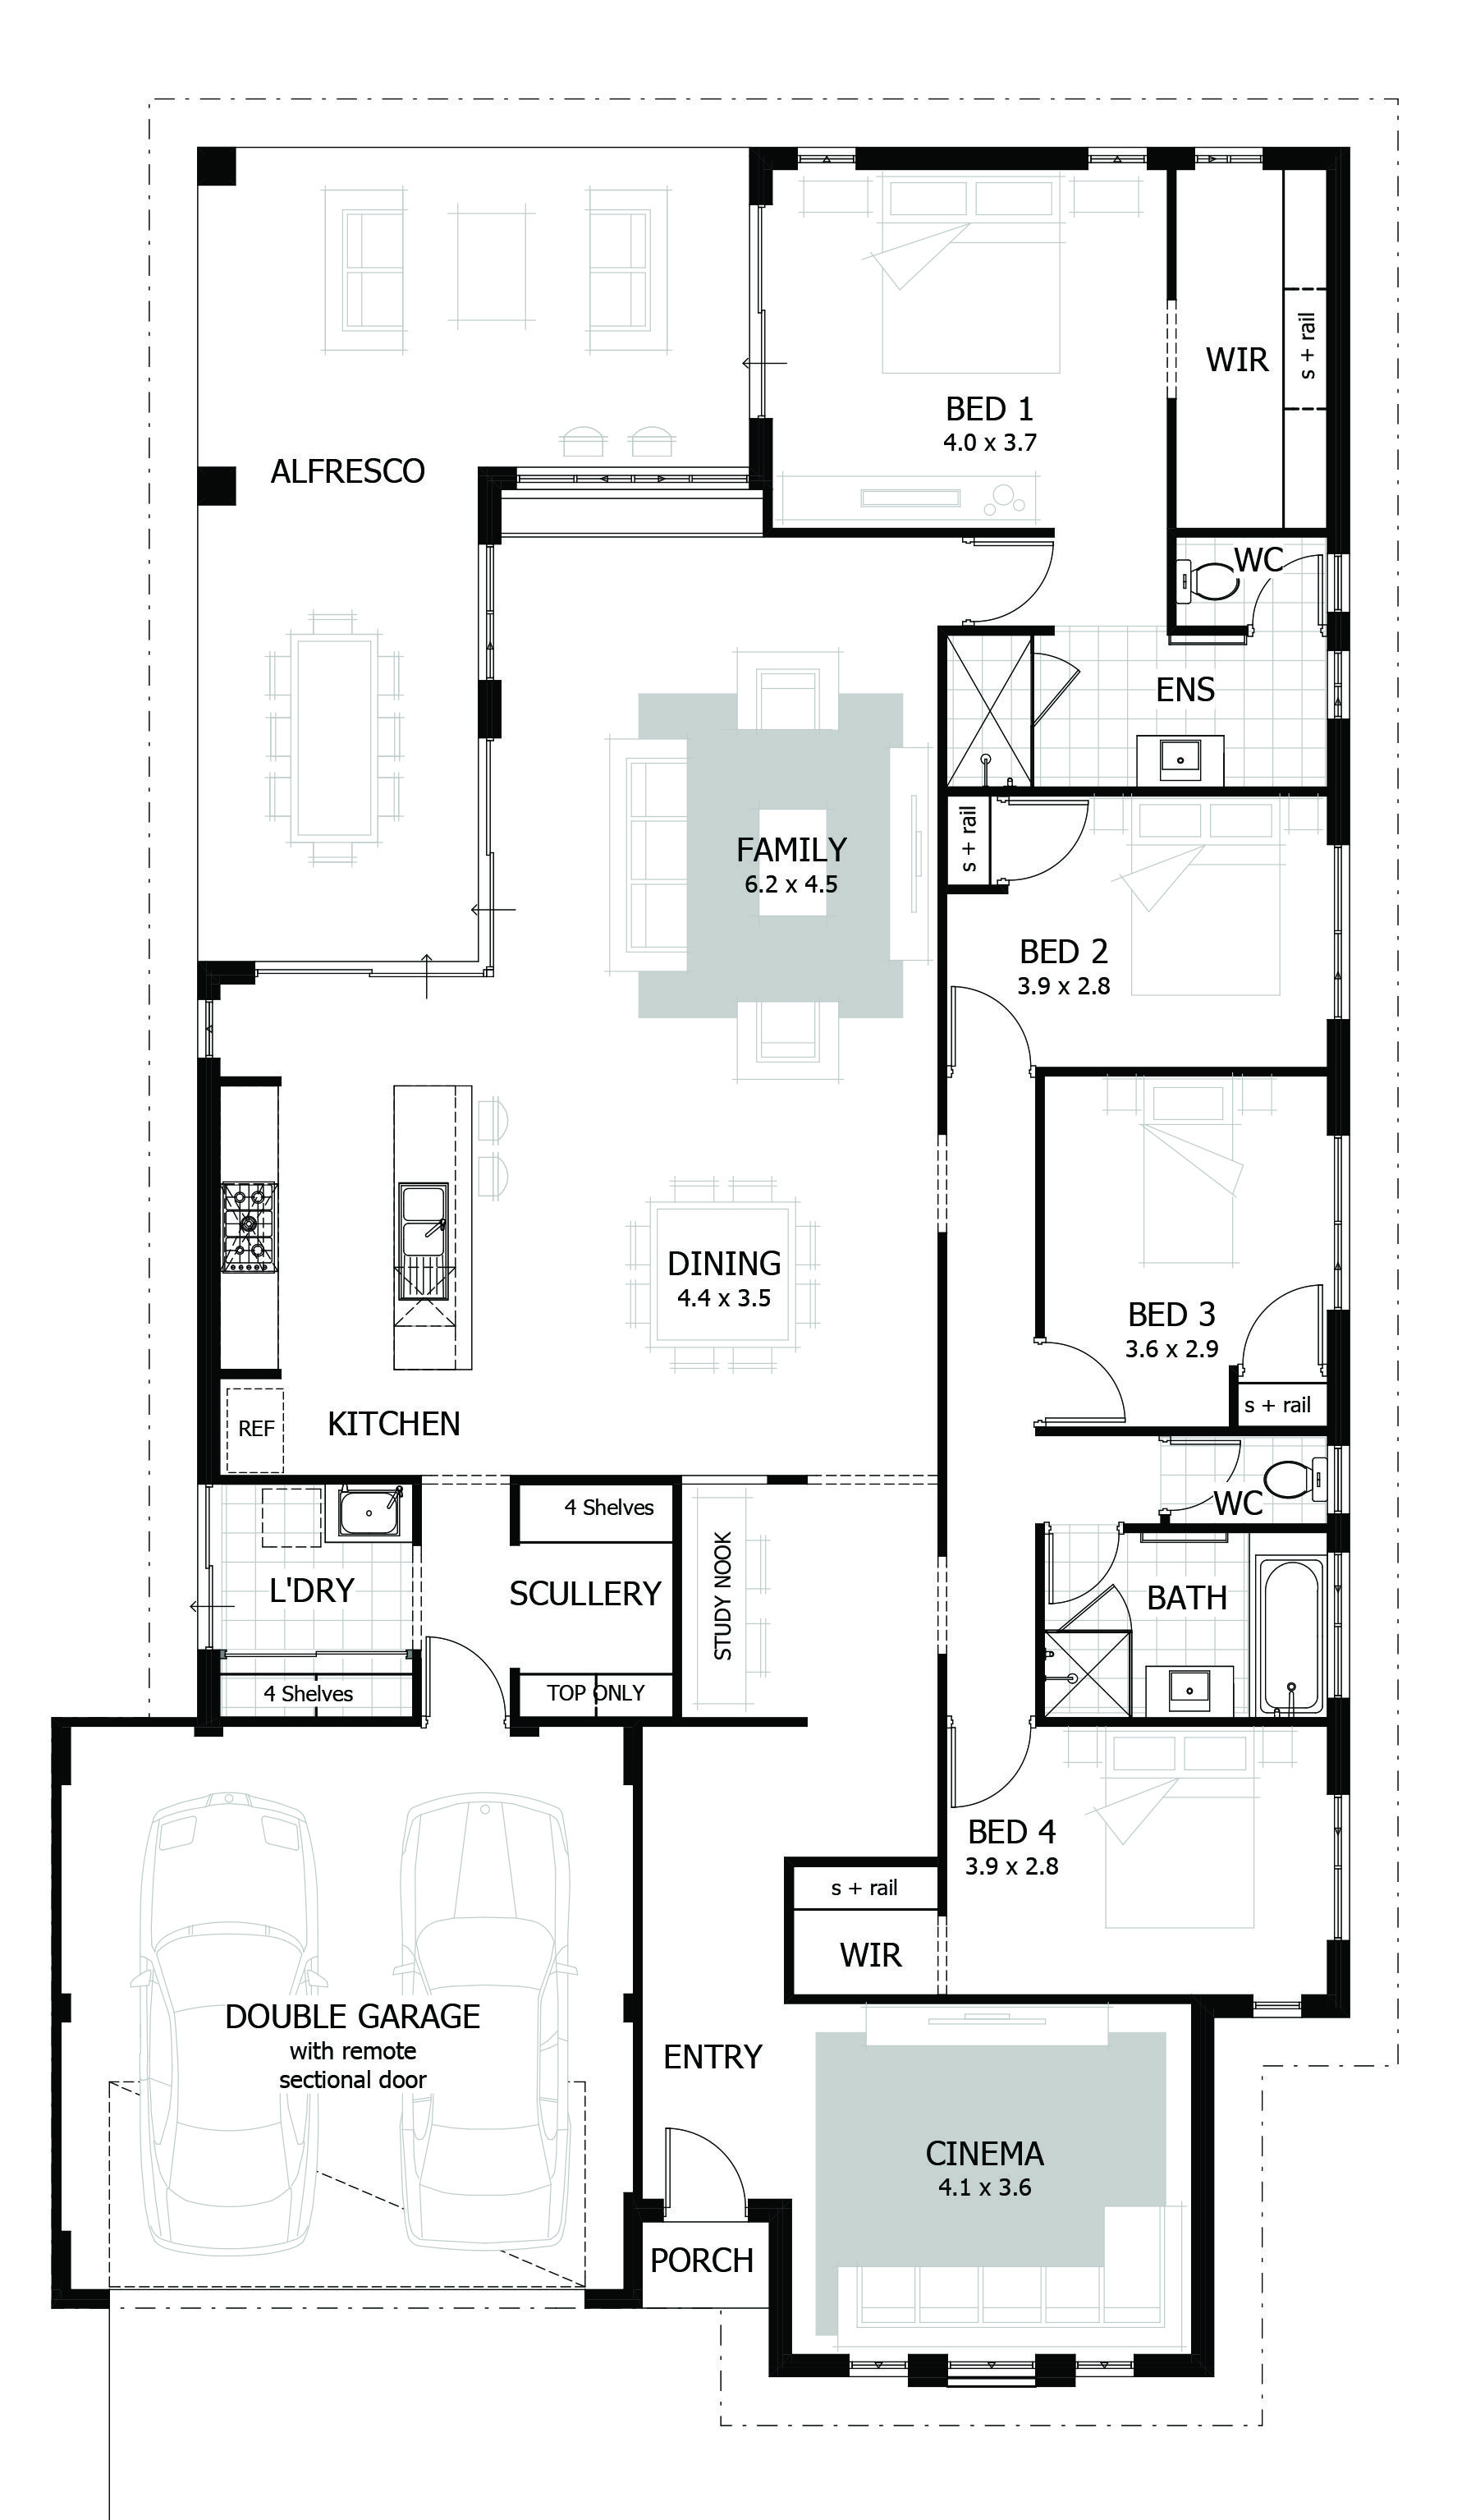 5-zimmer-haus design-pläne browse our range of  bedroom house plans  sweet home  pinterest